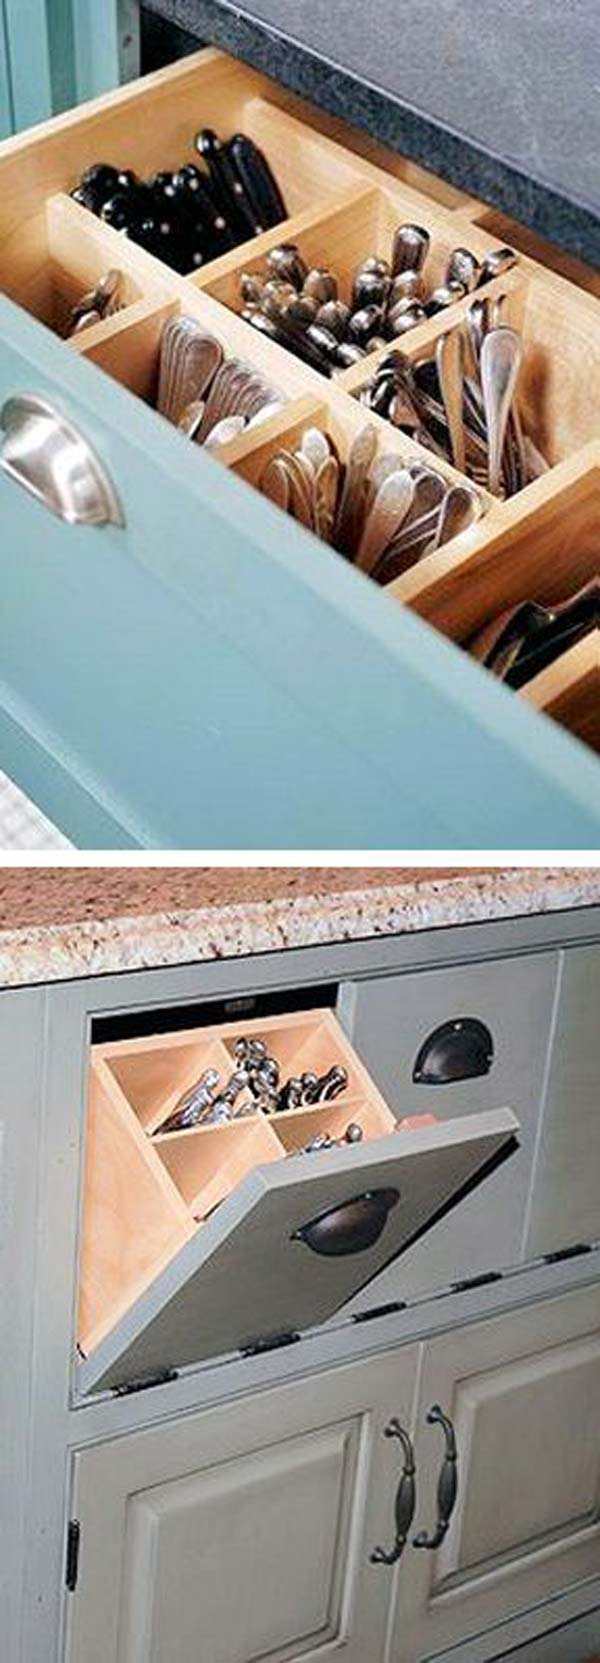 Store vertically in a deep drawer with compartments.